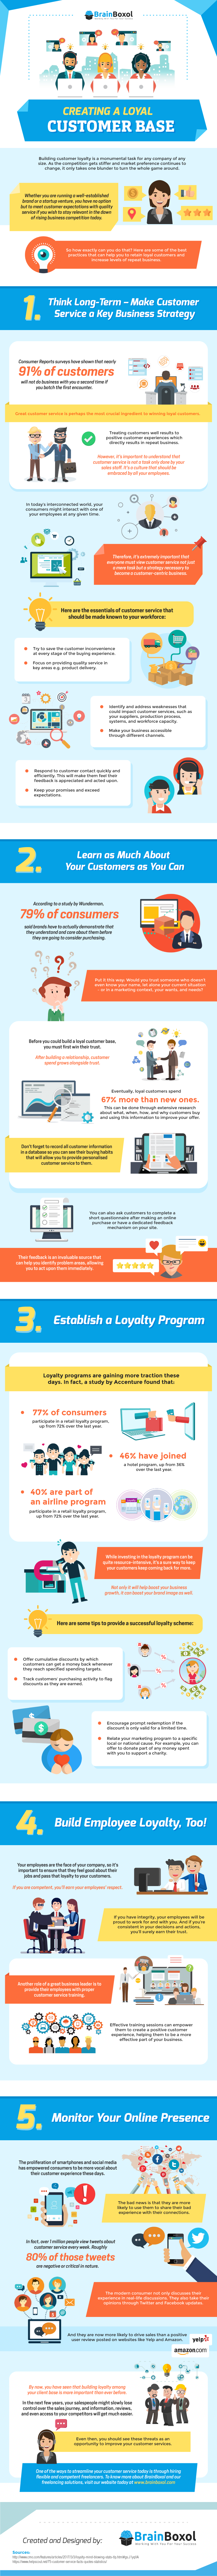 Creating-a-Loyal-Customer-Base-01-infographic_Customer loyalty has become the holy grail of business - it used to be all about attracting customers, now it's all about retaining them. Check out this cracking infographic by BrainBoxol, which helps explain for Comms Axis blog readers exactly what needs to be done and why!